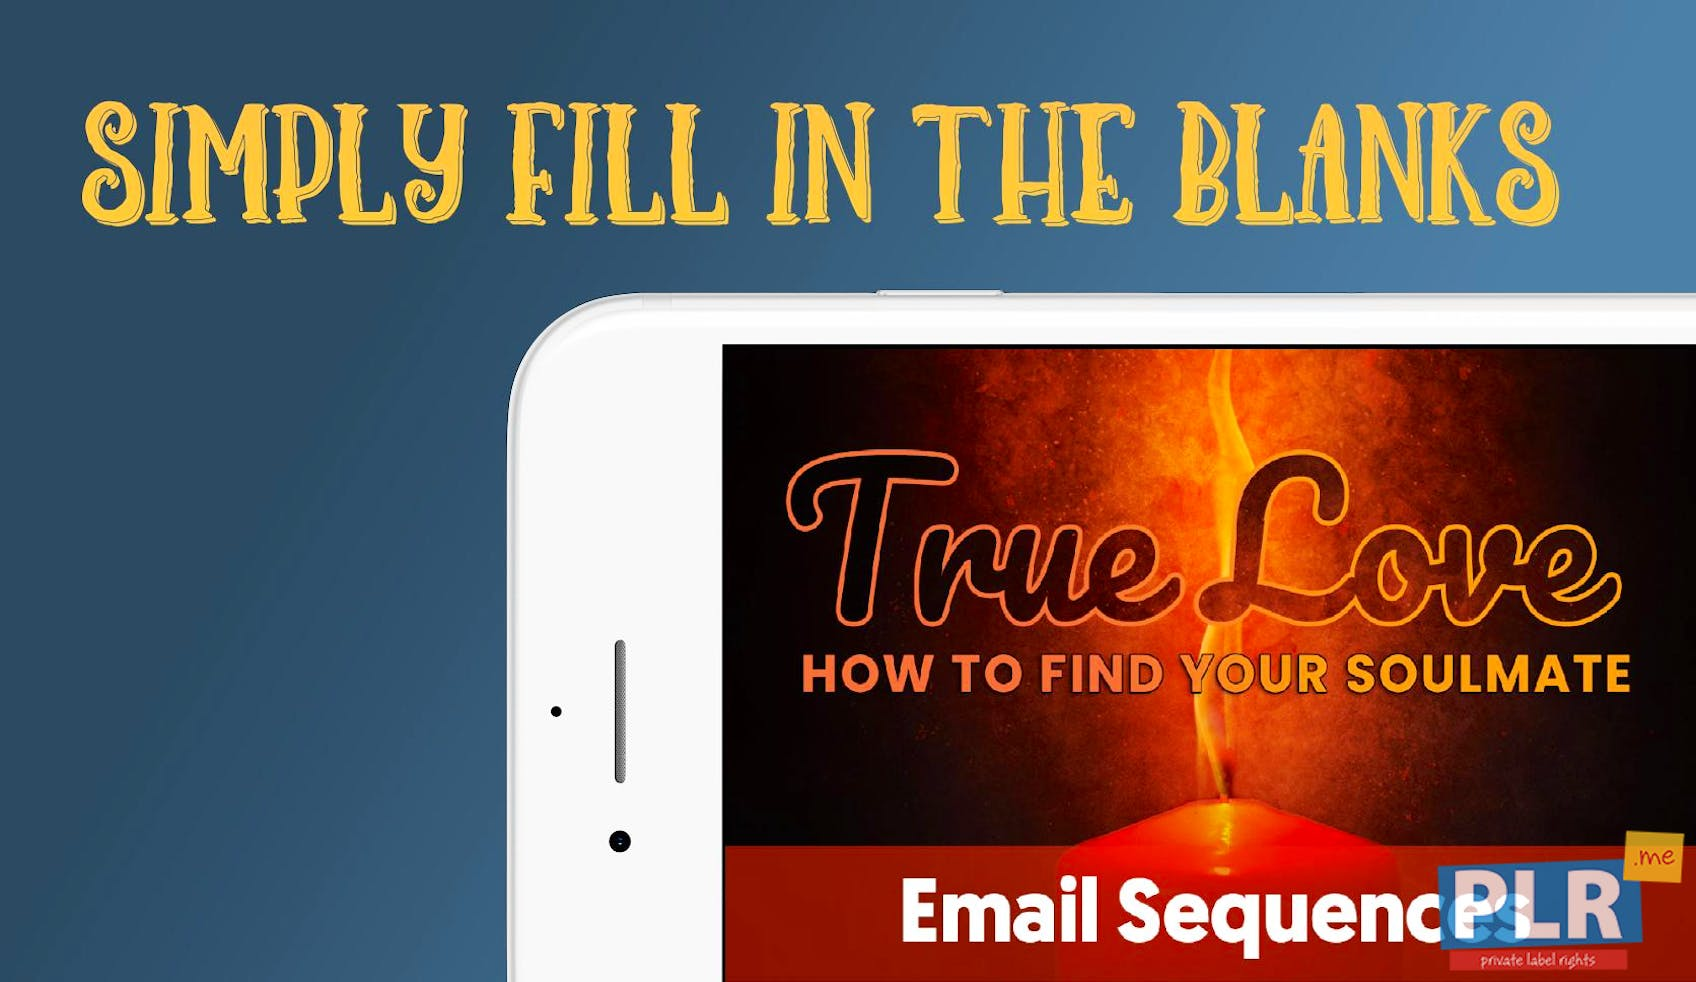 True Love: How To Find Your Soulmate - Email Sequence